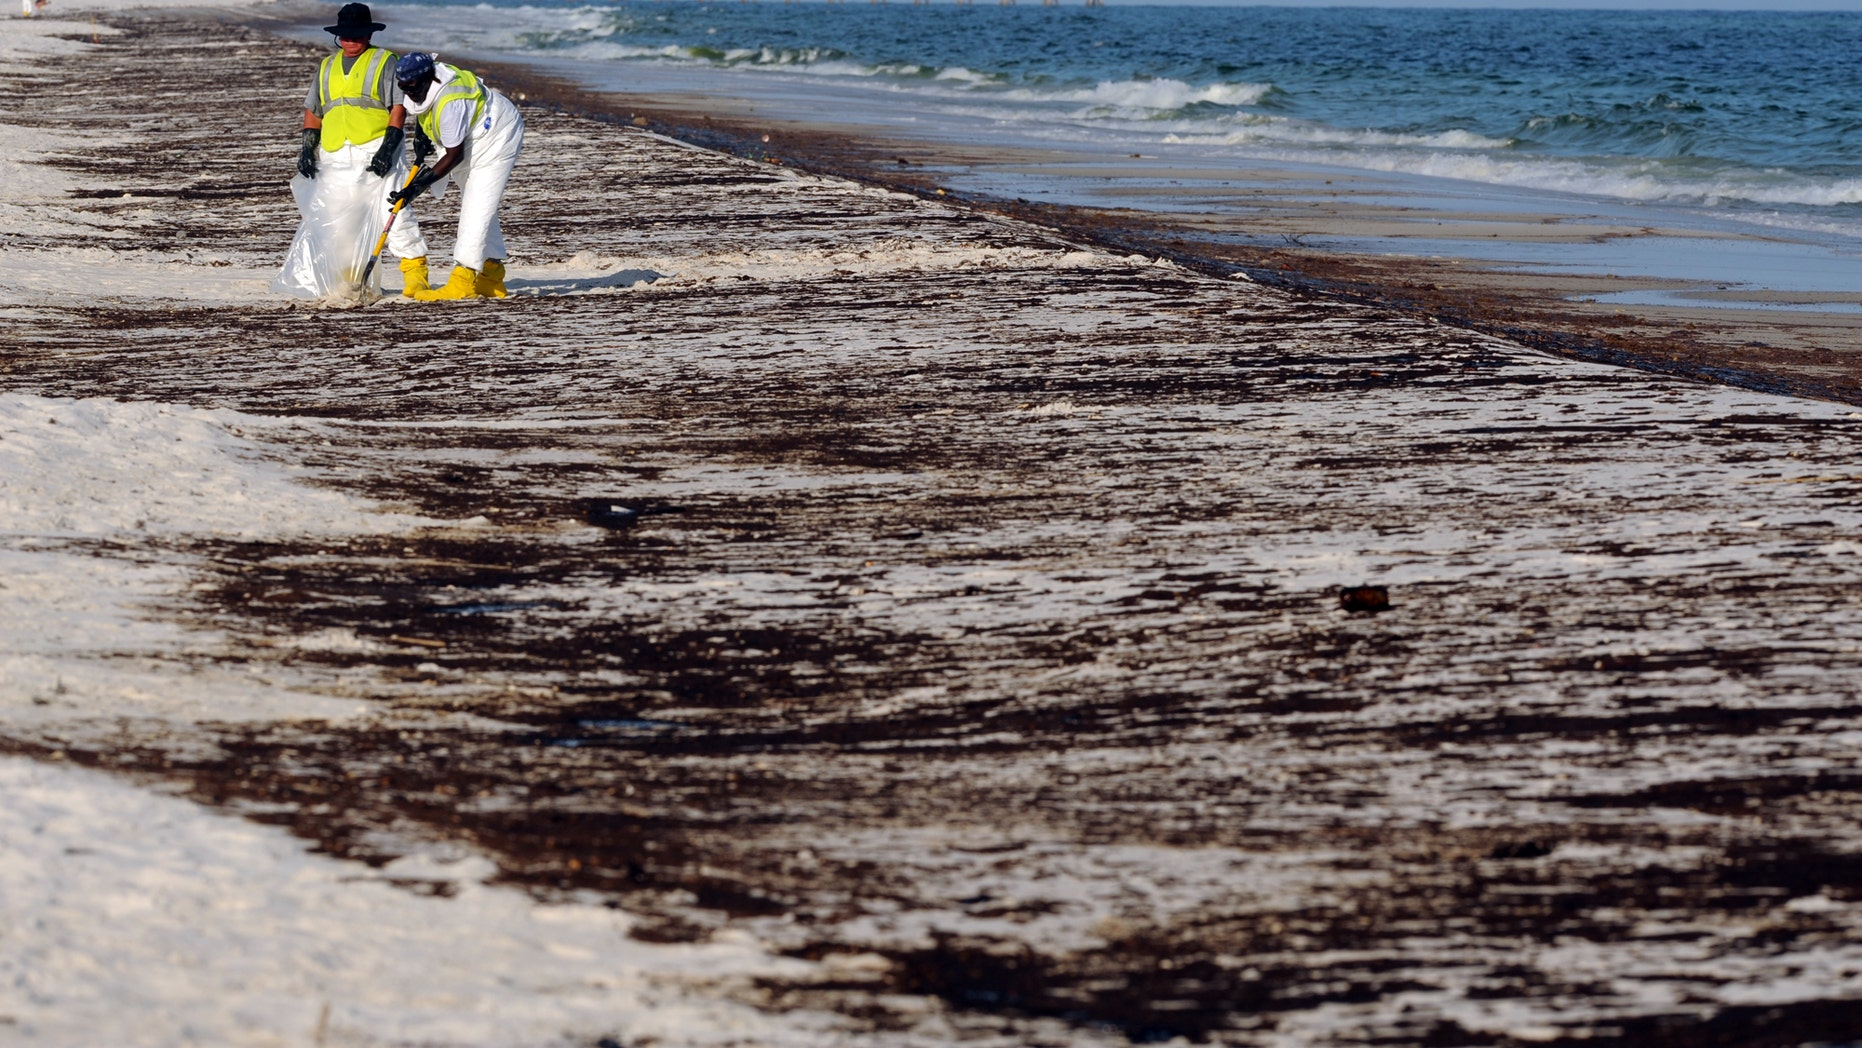 June 23: Crews work to clean up oil from the Deepwater Horizon oil spill washed ashore at Pensacola Beach in Pensacola, Fla.